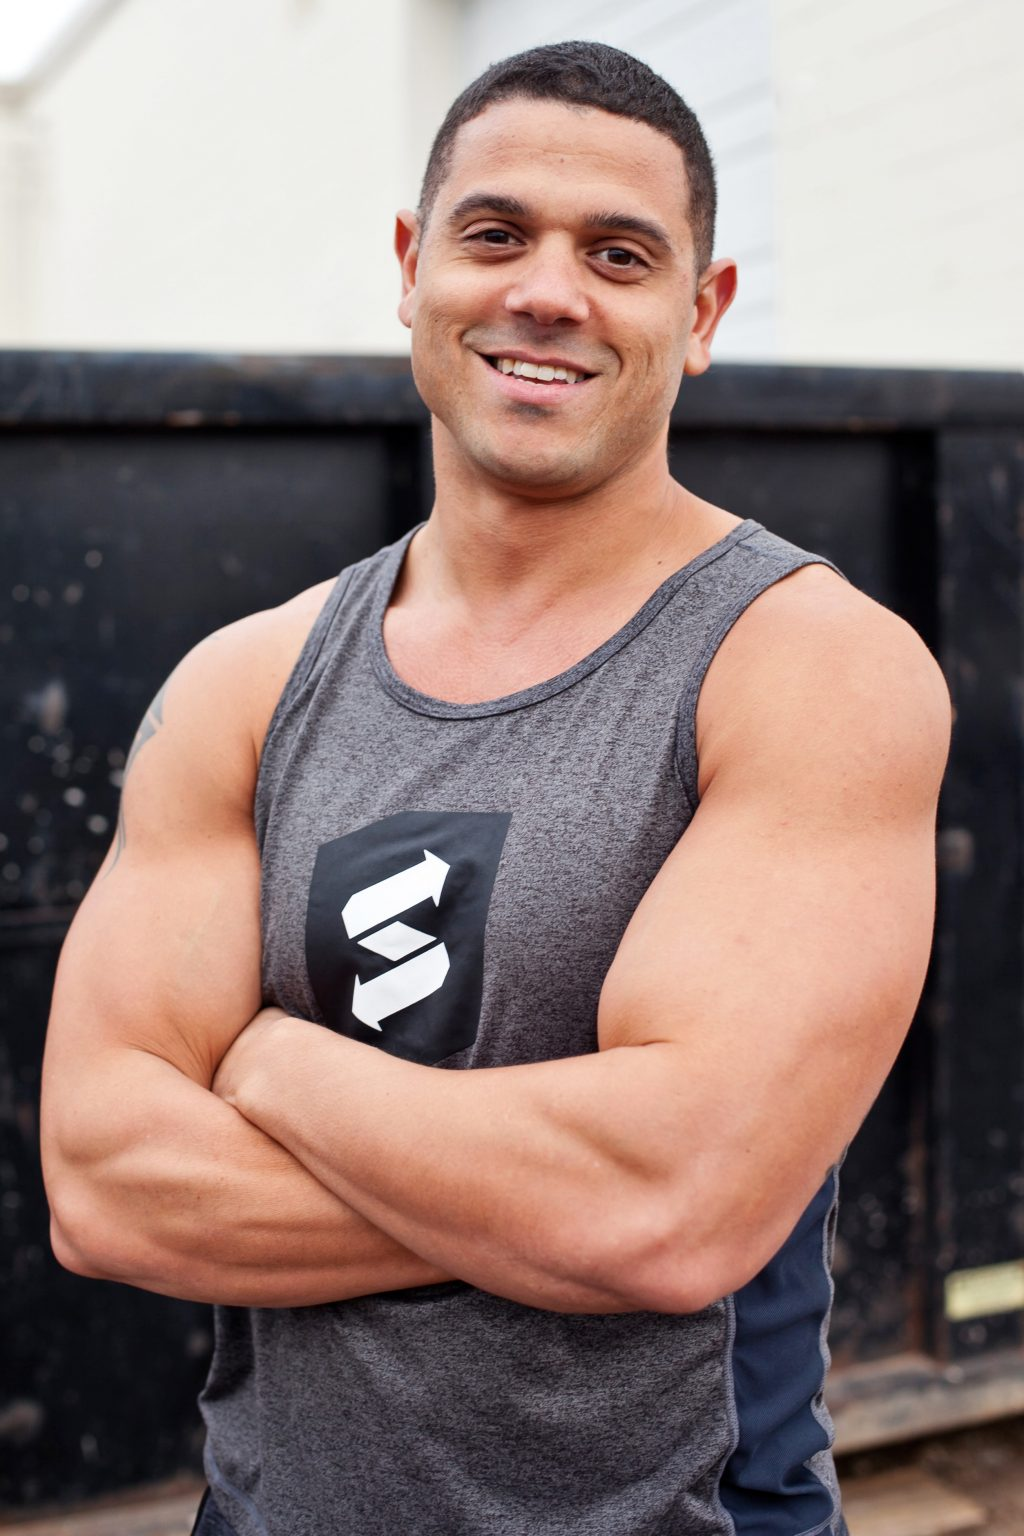 Personal Trainer Minneapolis, Minnesota - Drew Coleman